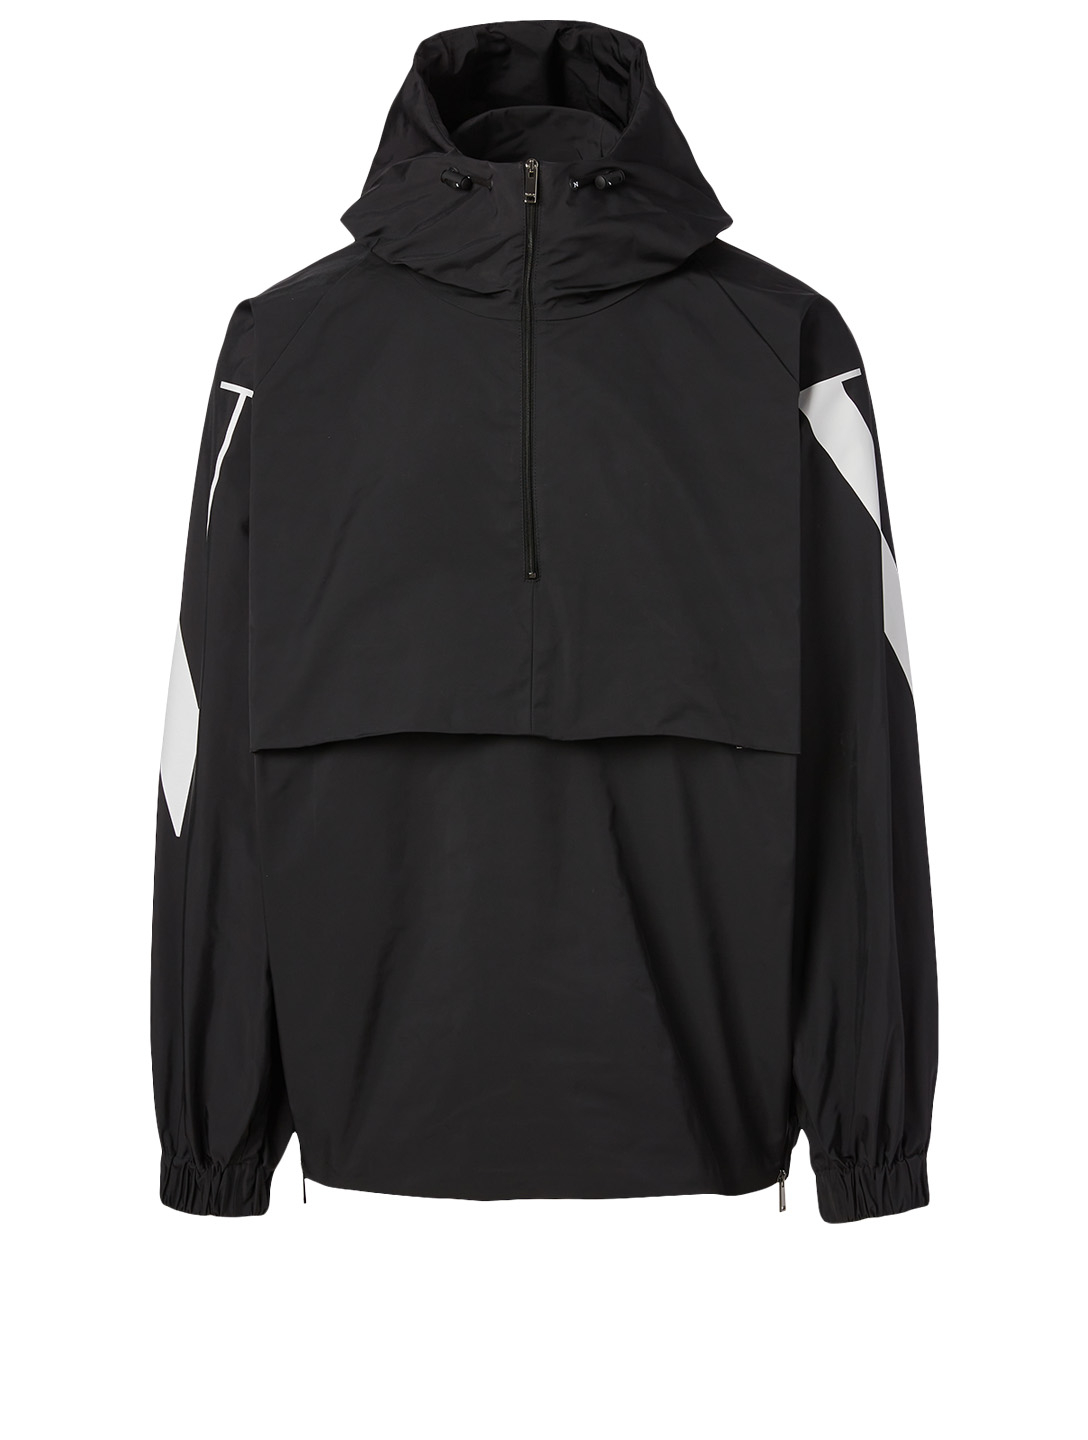 VALENTINO Zip Pullover Jacket With VLTN Logo Men's Multi